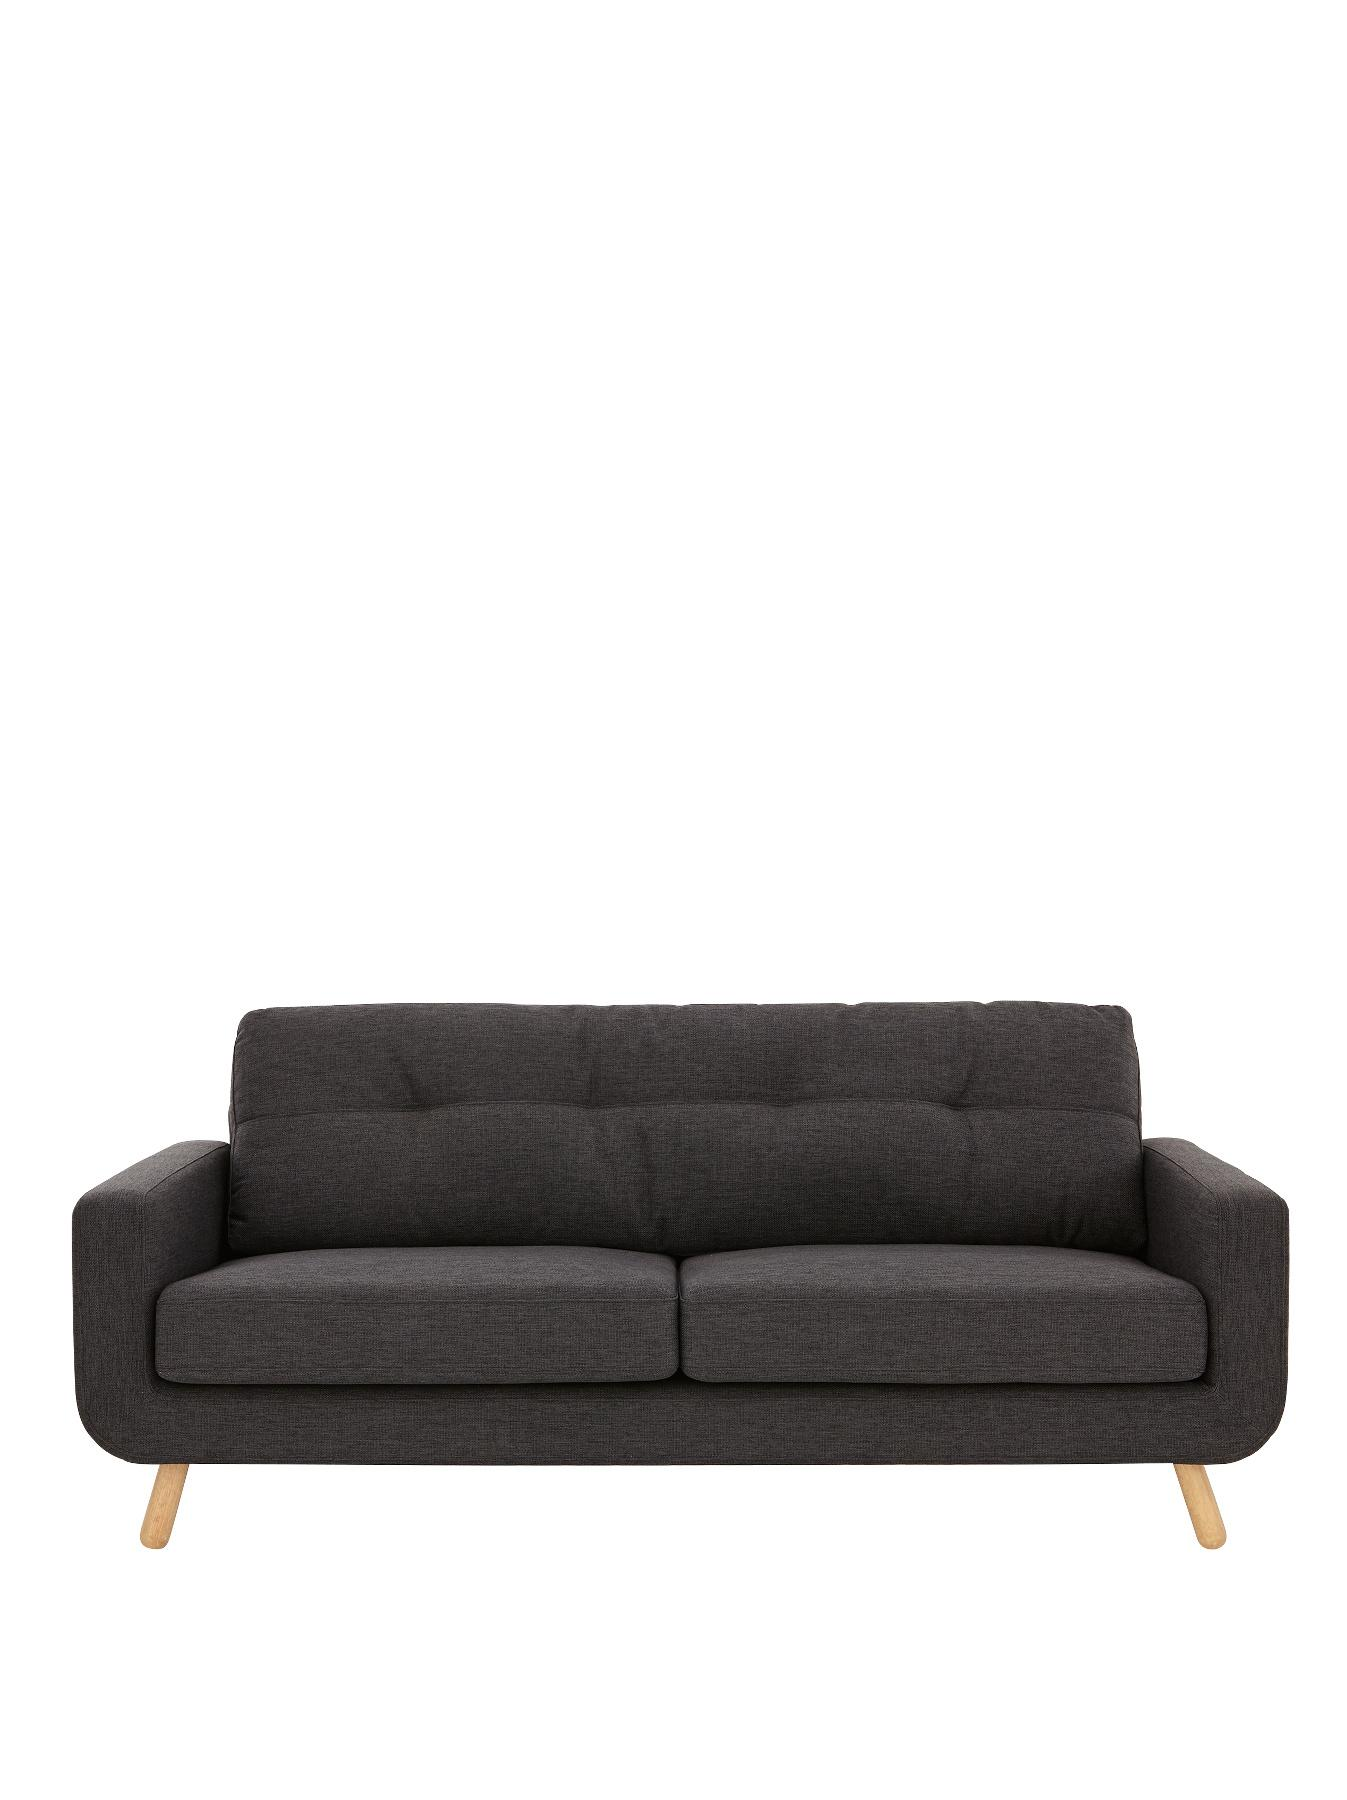 Sloane 3-Seater Sofa - Charcoal, Charcoal,Green